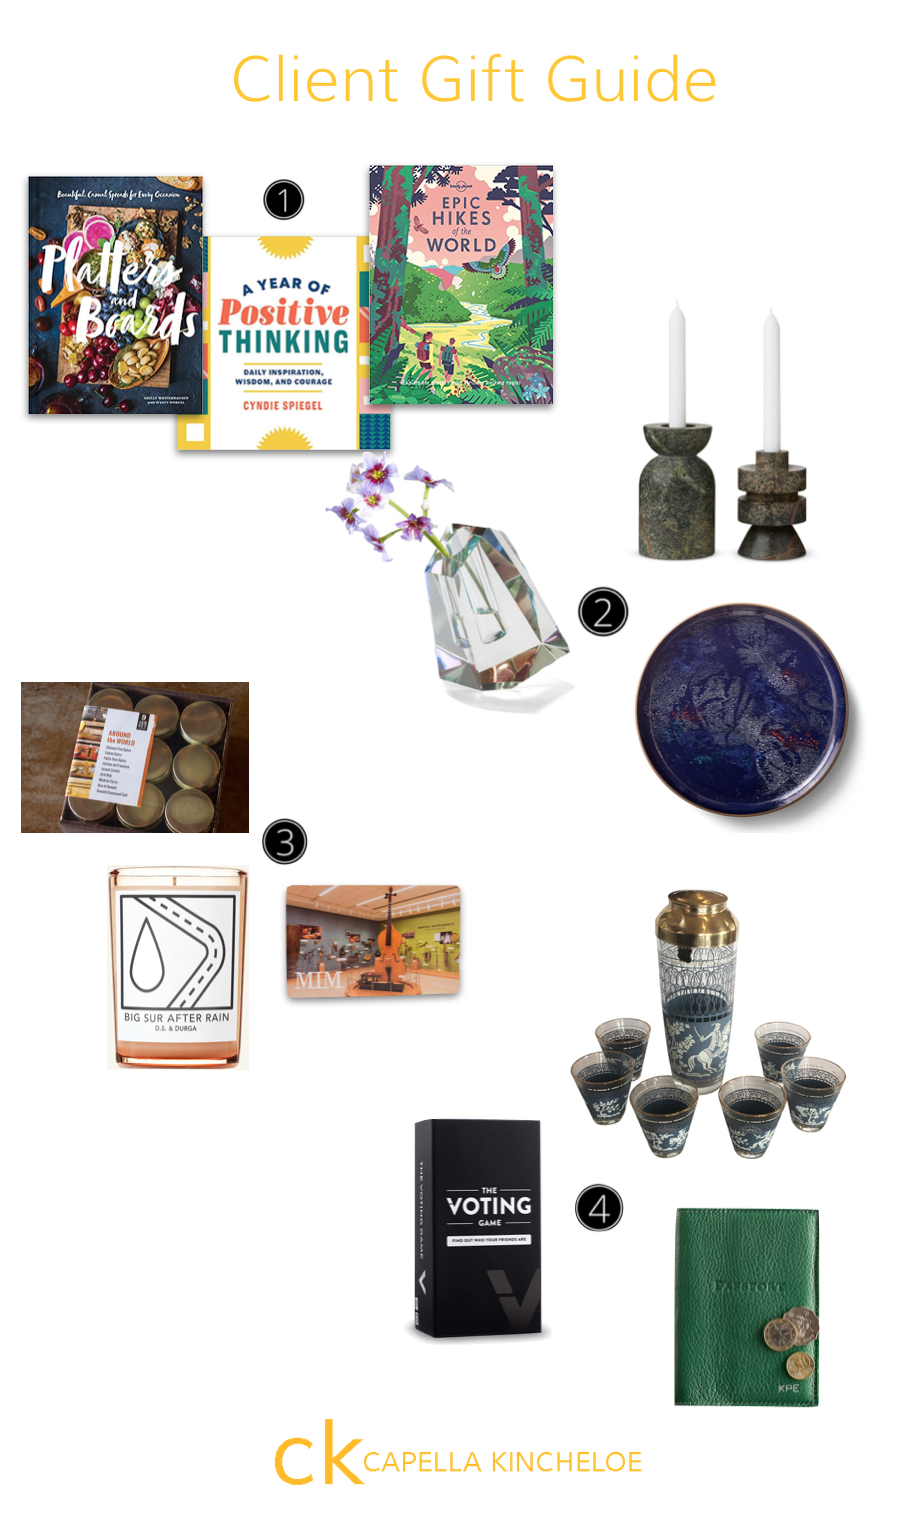 Great gift ideas for your clients. #interiordesignbusiness #cktradesecrets #giftguide #clientgifts